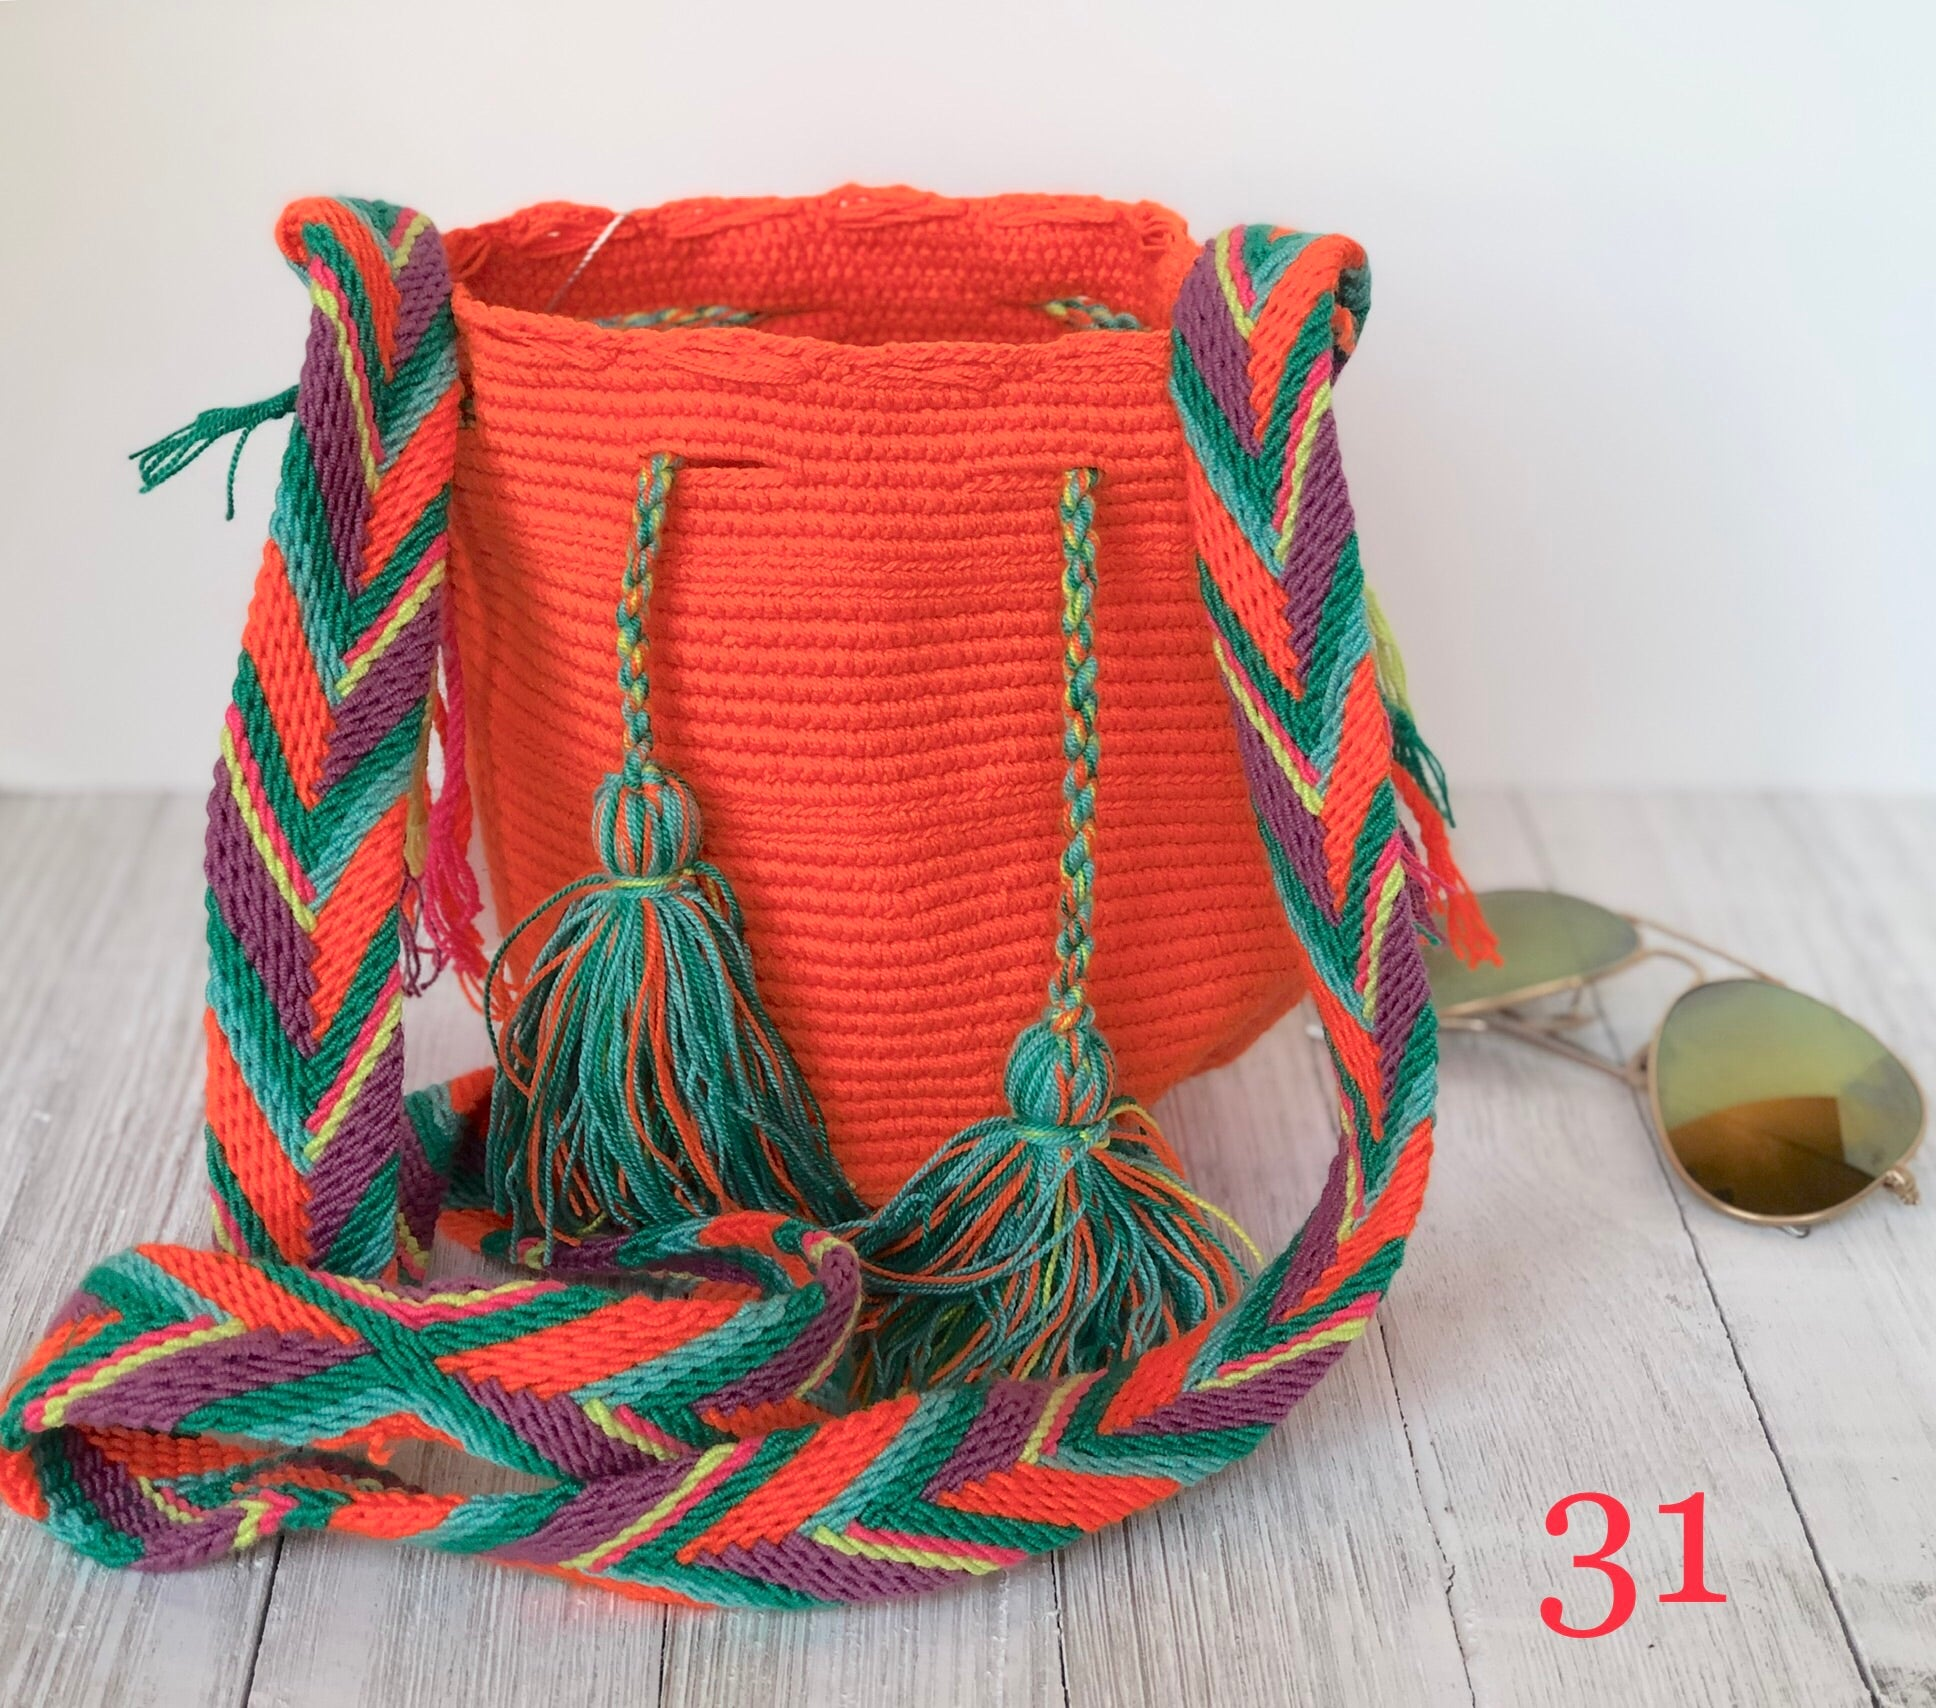 Orange Mini Crochet Bags-Small Wayuu Bags-Girls Summer Crossbody Bags